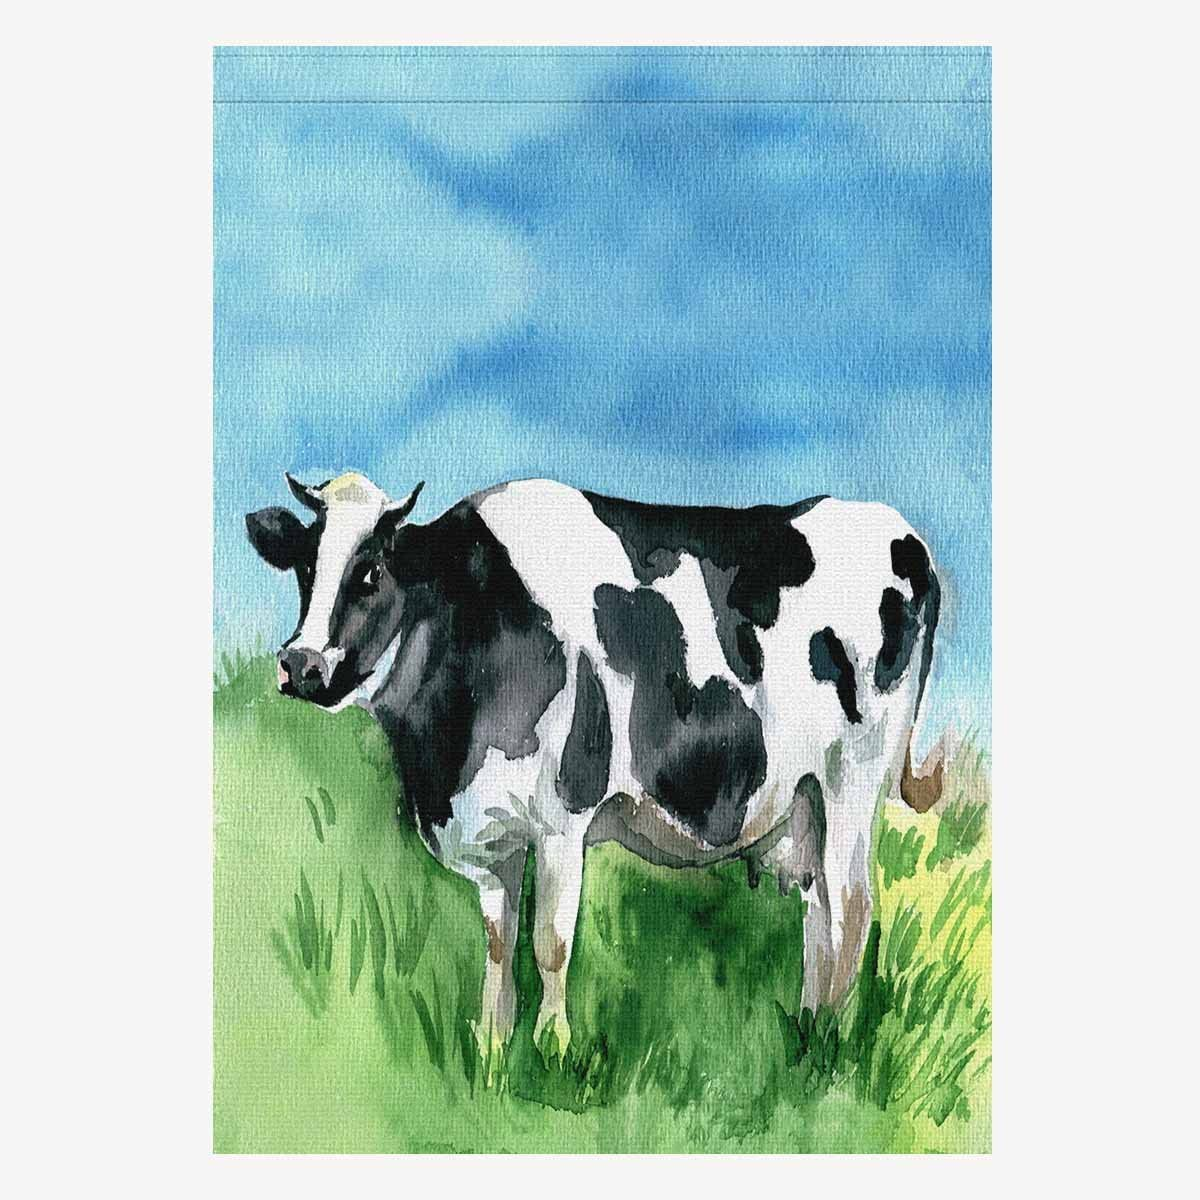 Amazon Com Interestprint House Flag House Banner Watercolor Dairy Cow Cattle Funny Animal Decorative Yard Flag For Wishing Party Home Outdoor Decor Oxford Cloth 28 X 40 Without Flagpole Garden